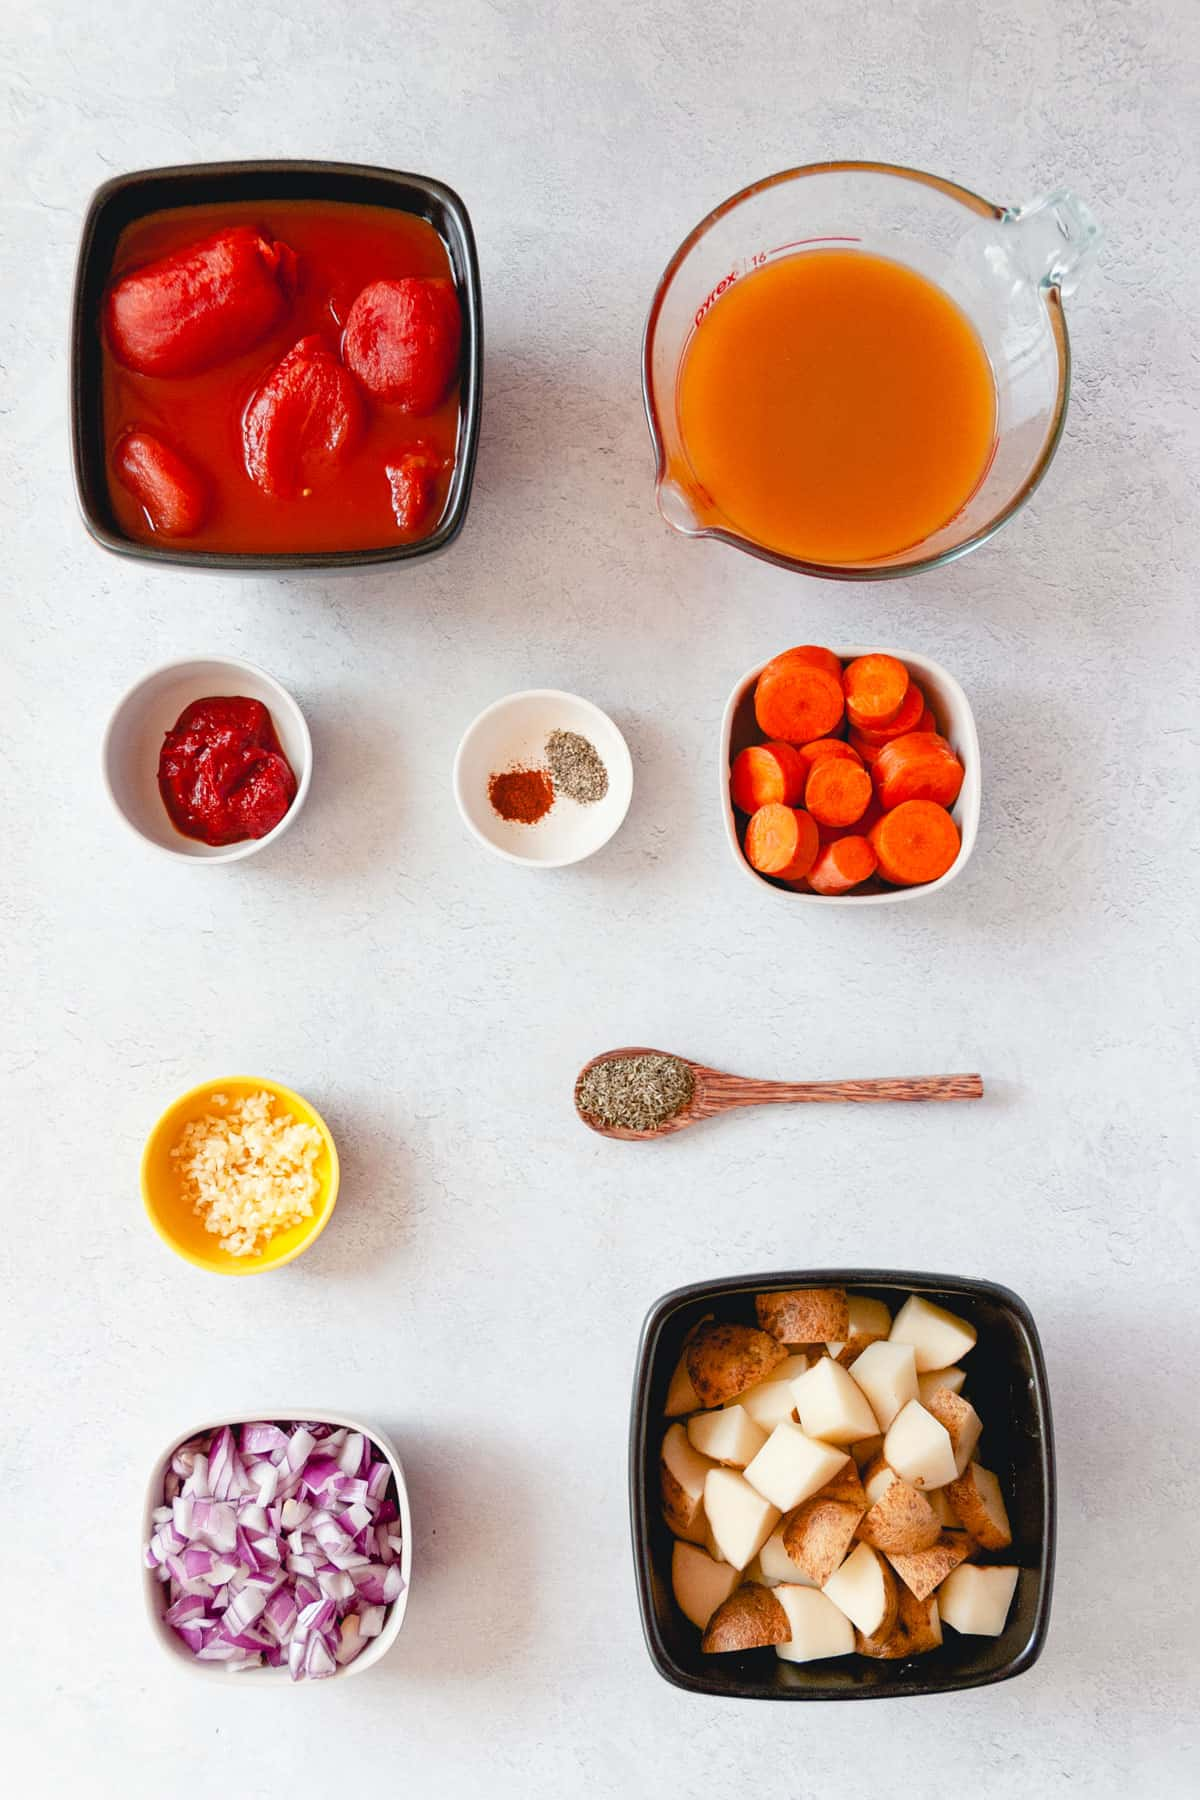 All the ingredients needed to make this recipe arranged in small bowls